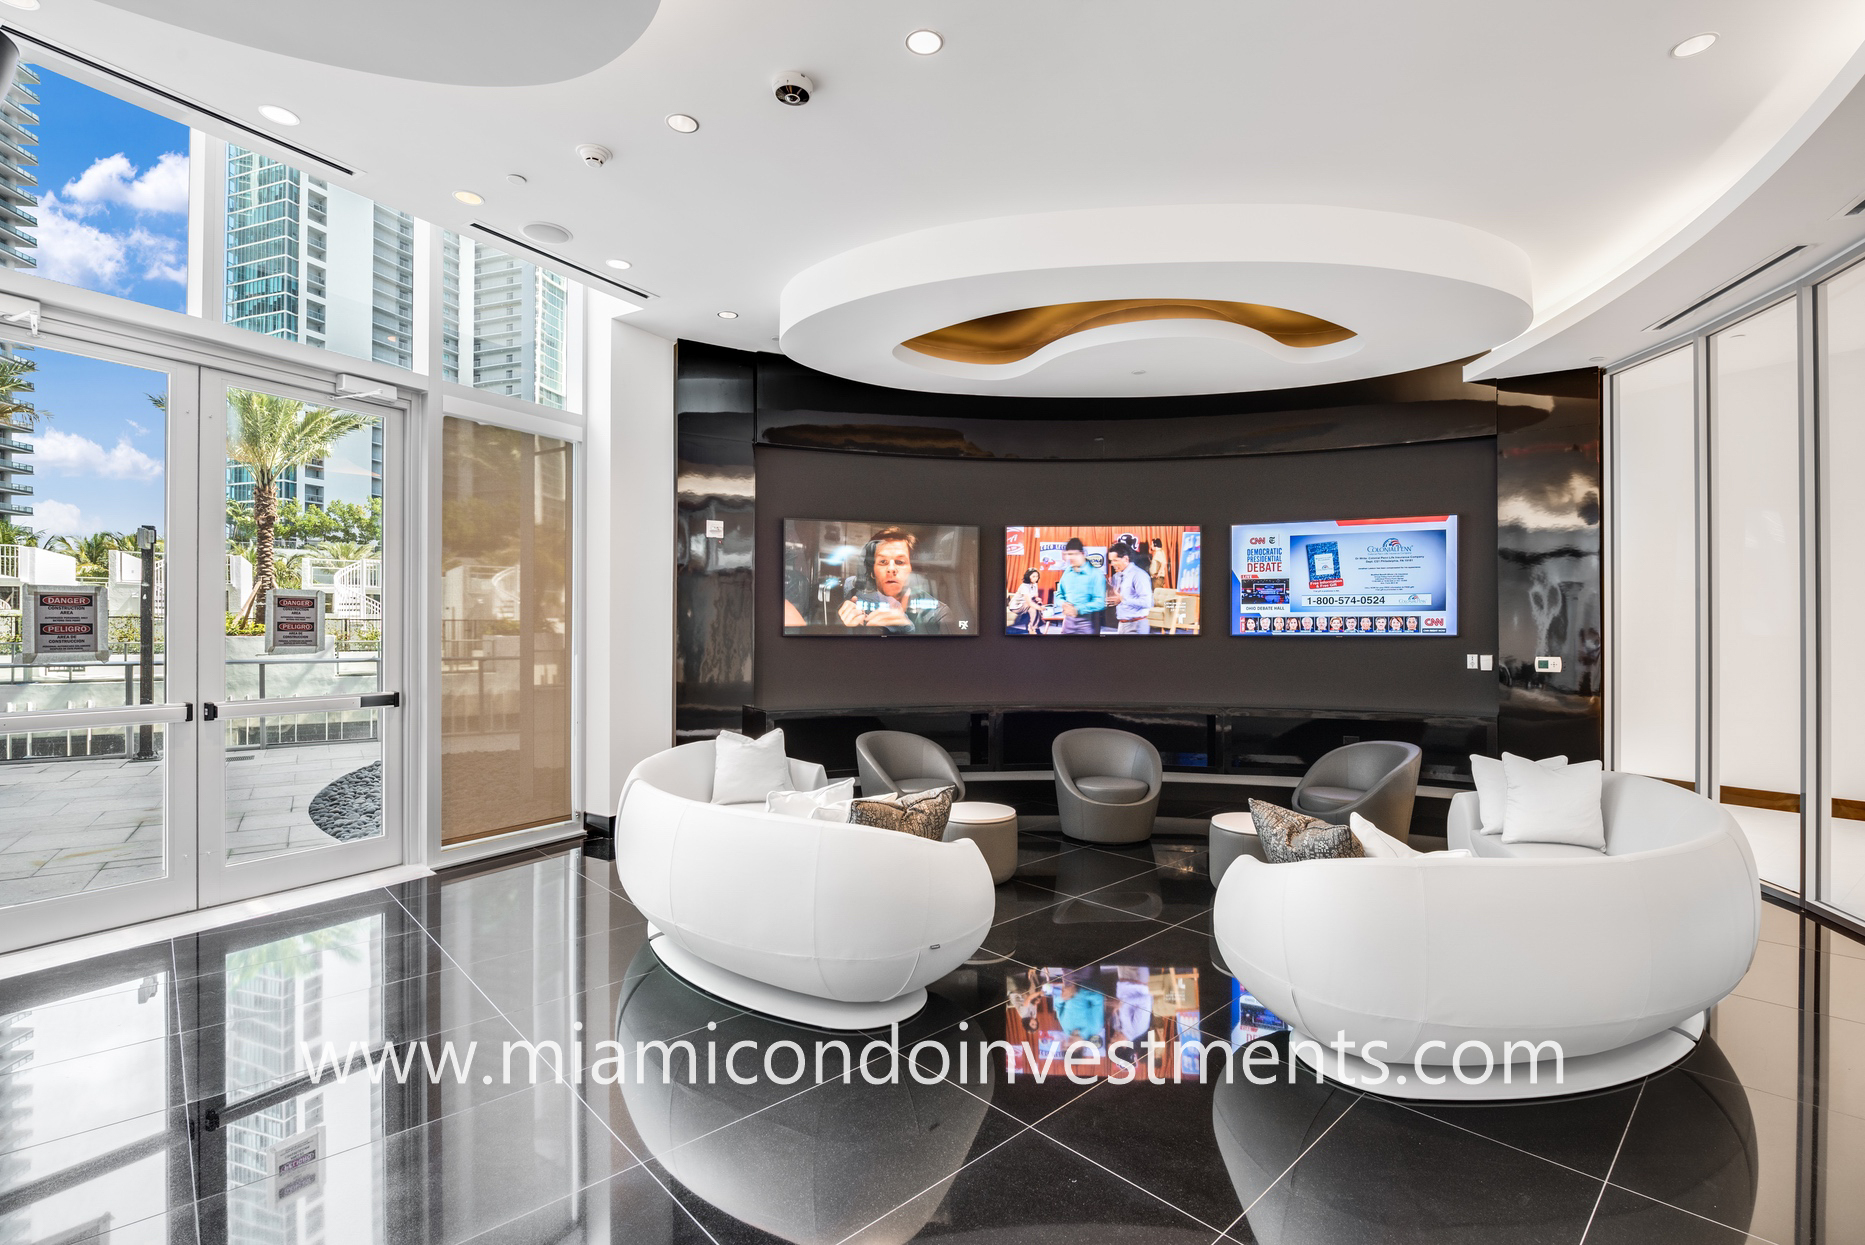 Paramount Miami Worldcenter game room